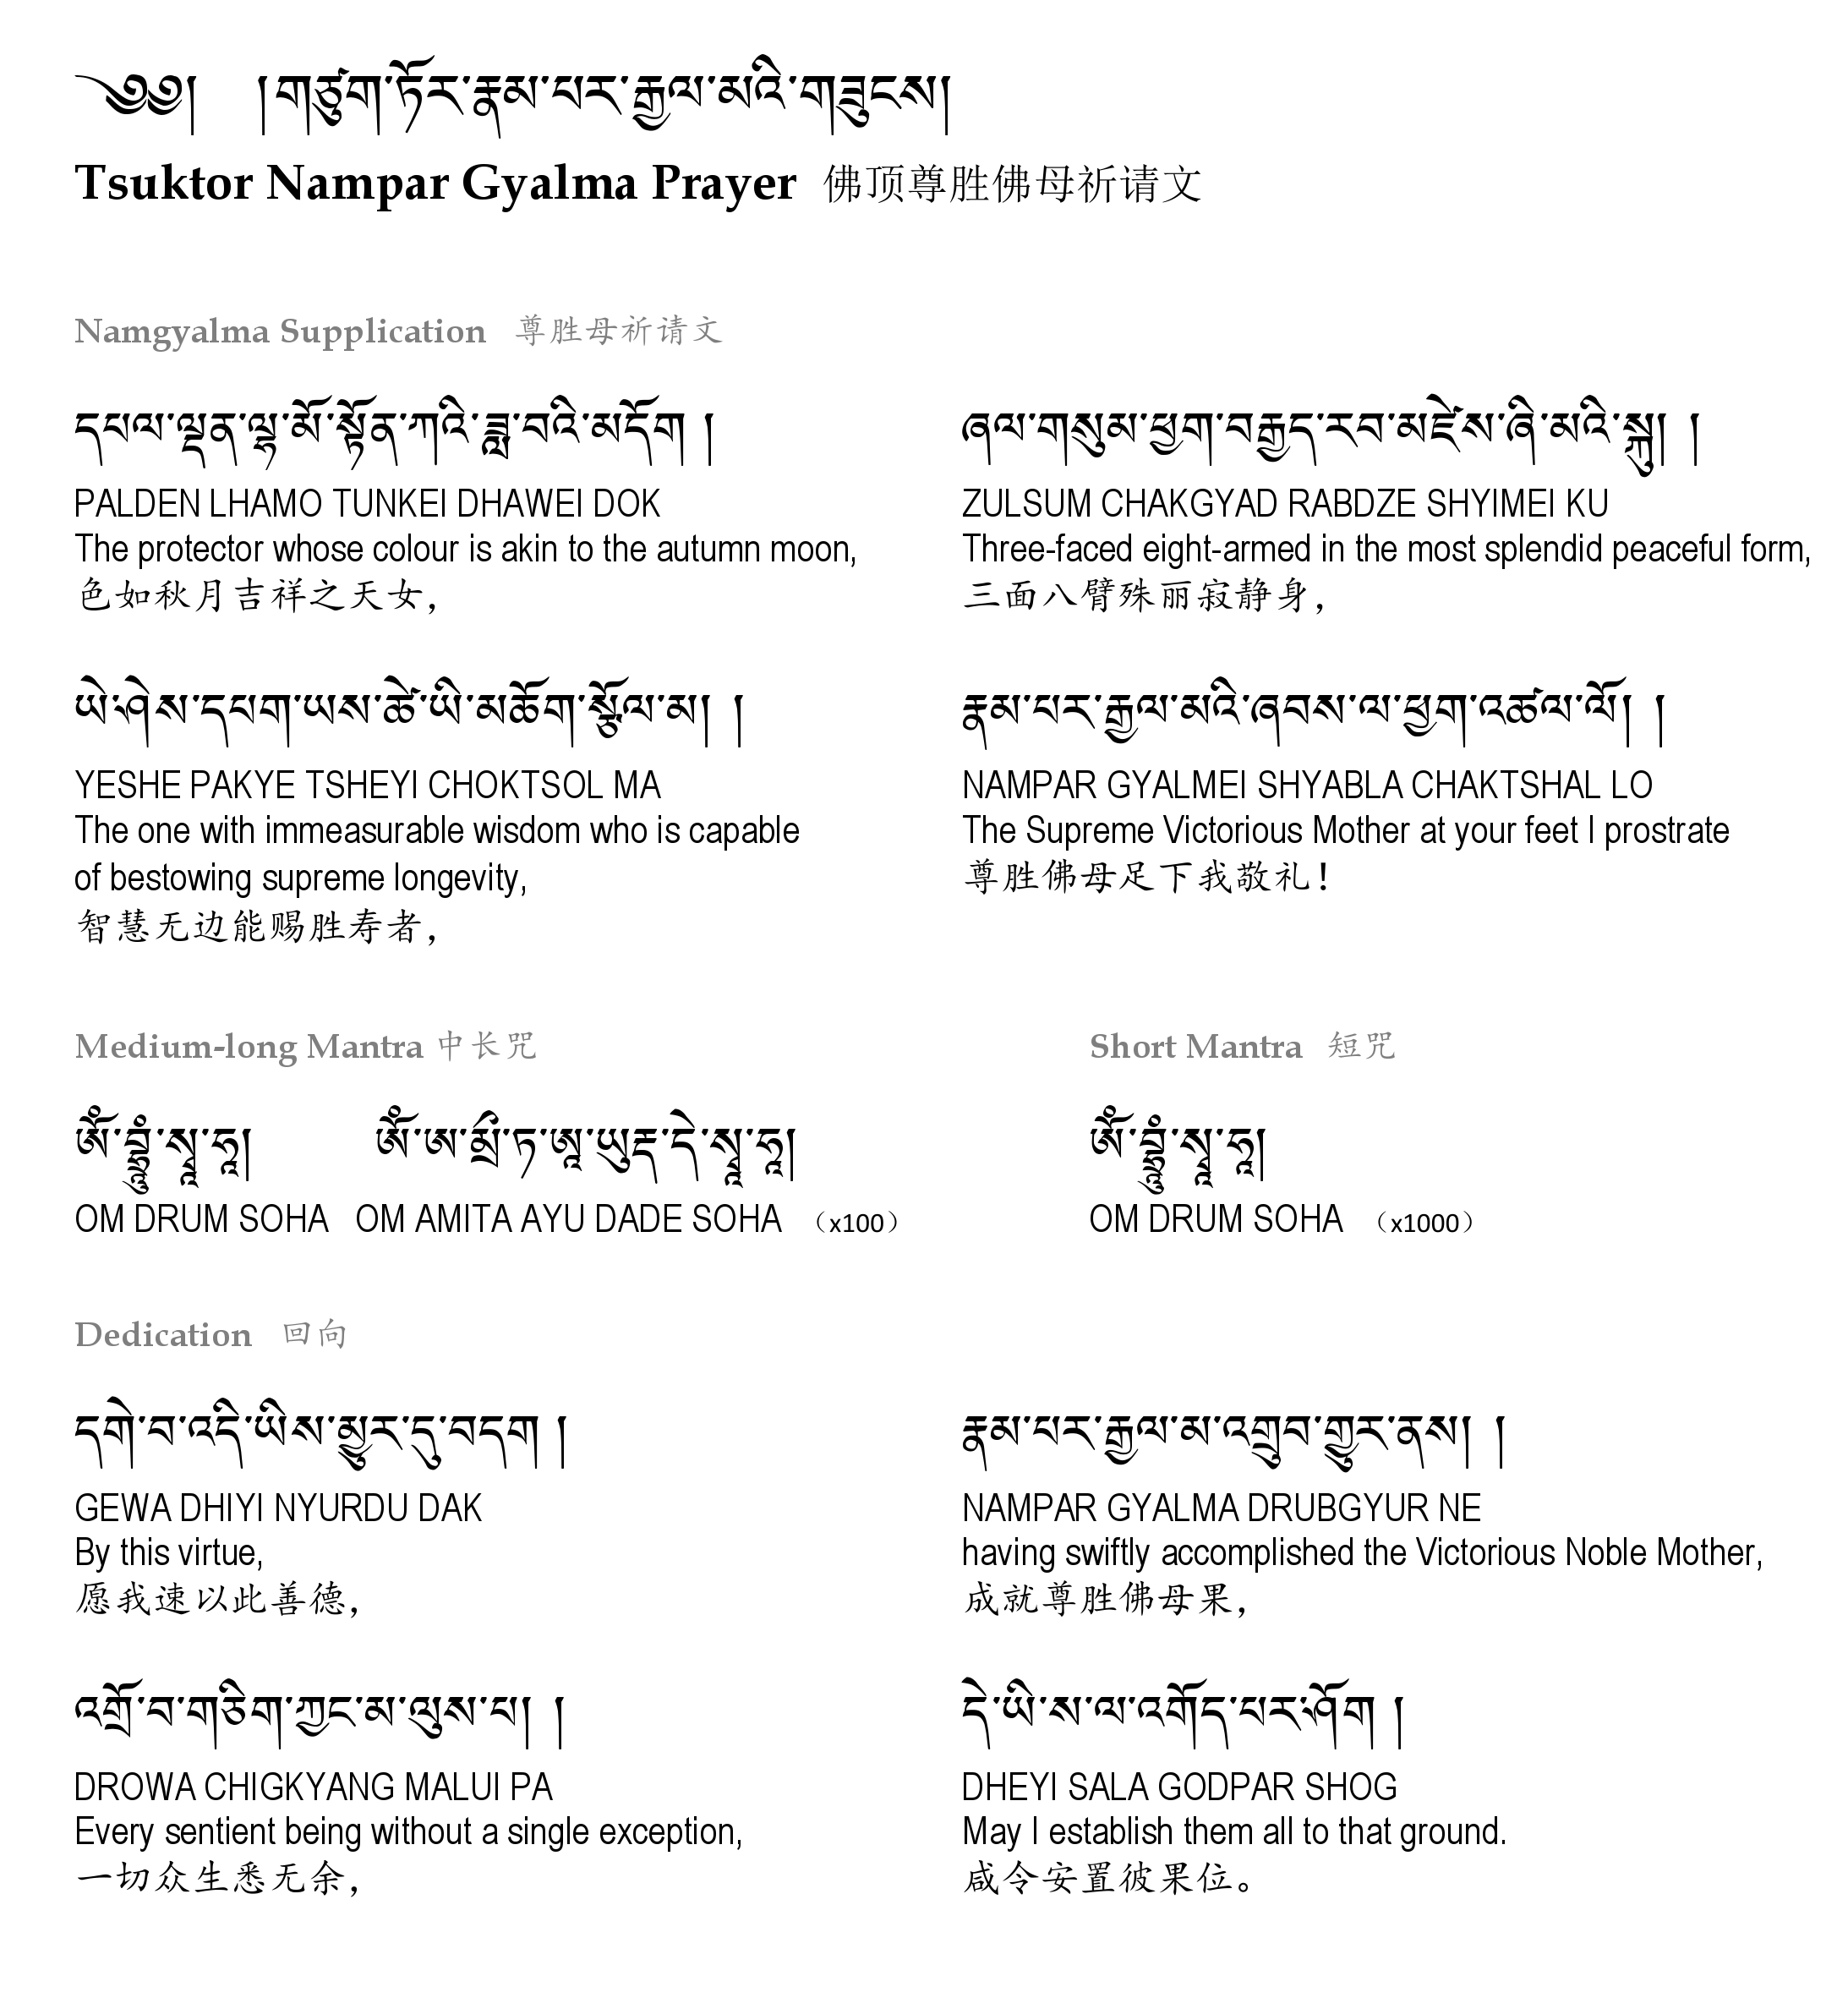 The Concise Prayer of Namgyalma by Choegon Rinpoche